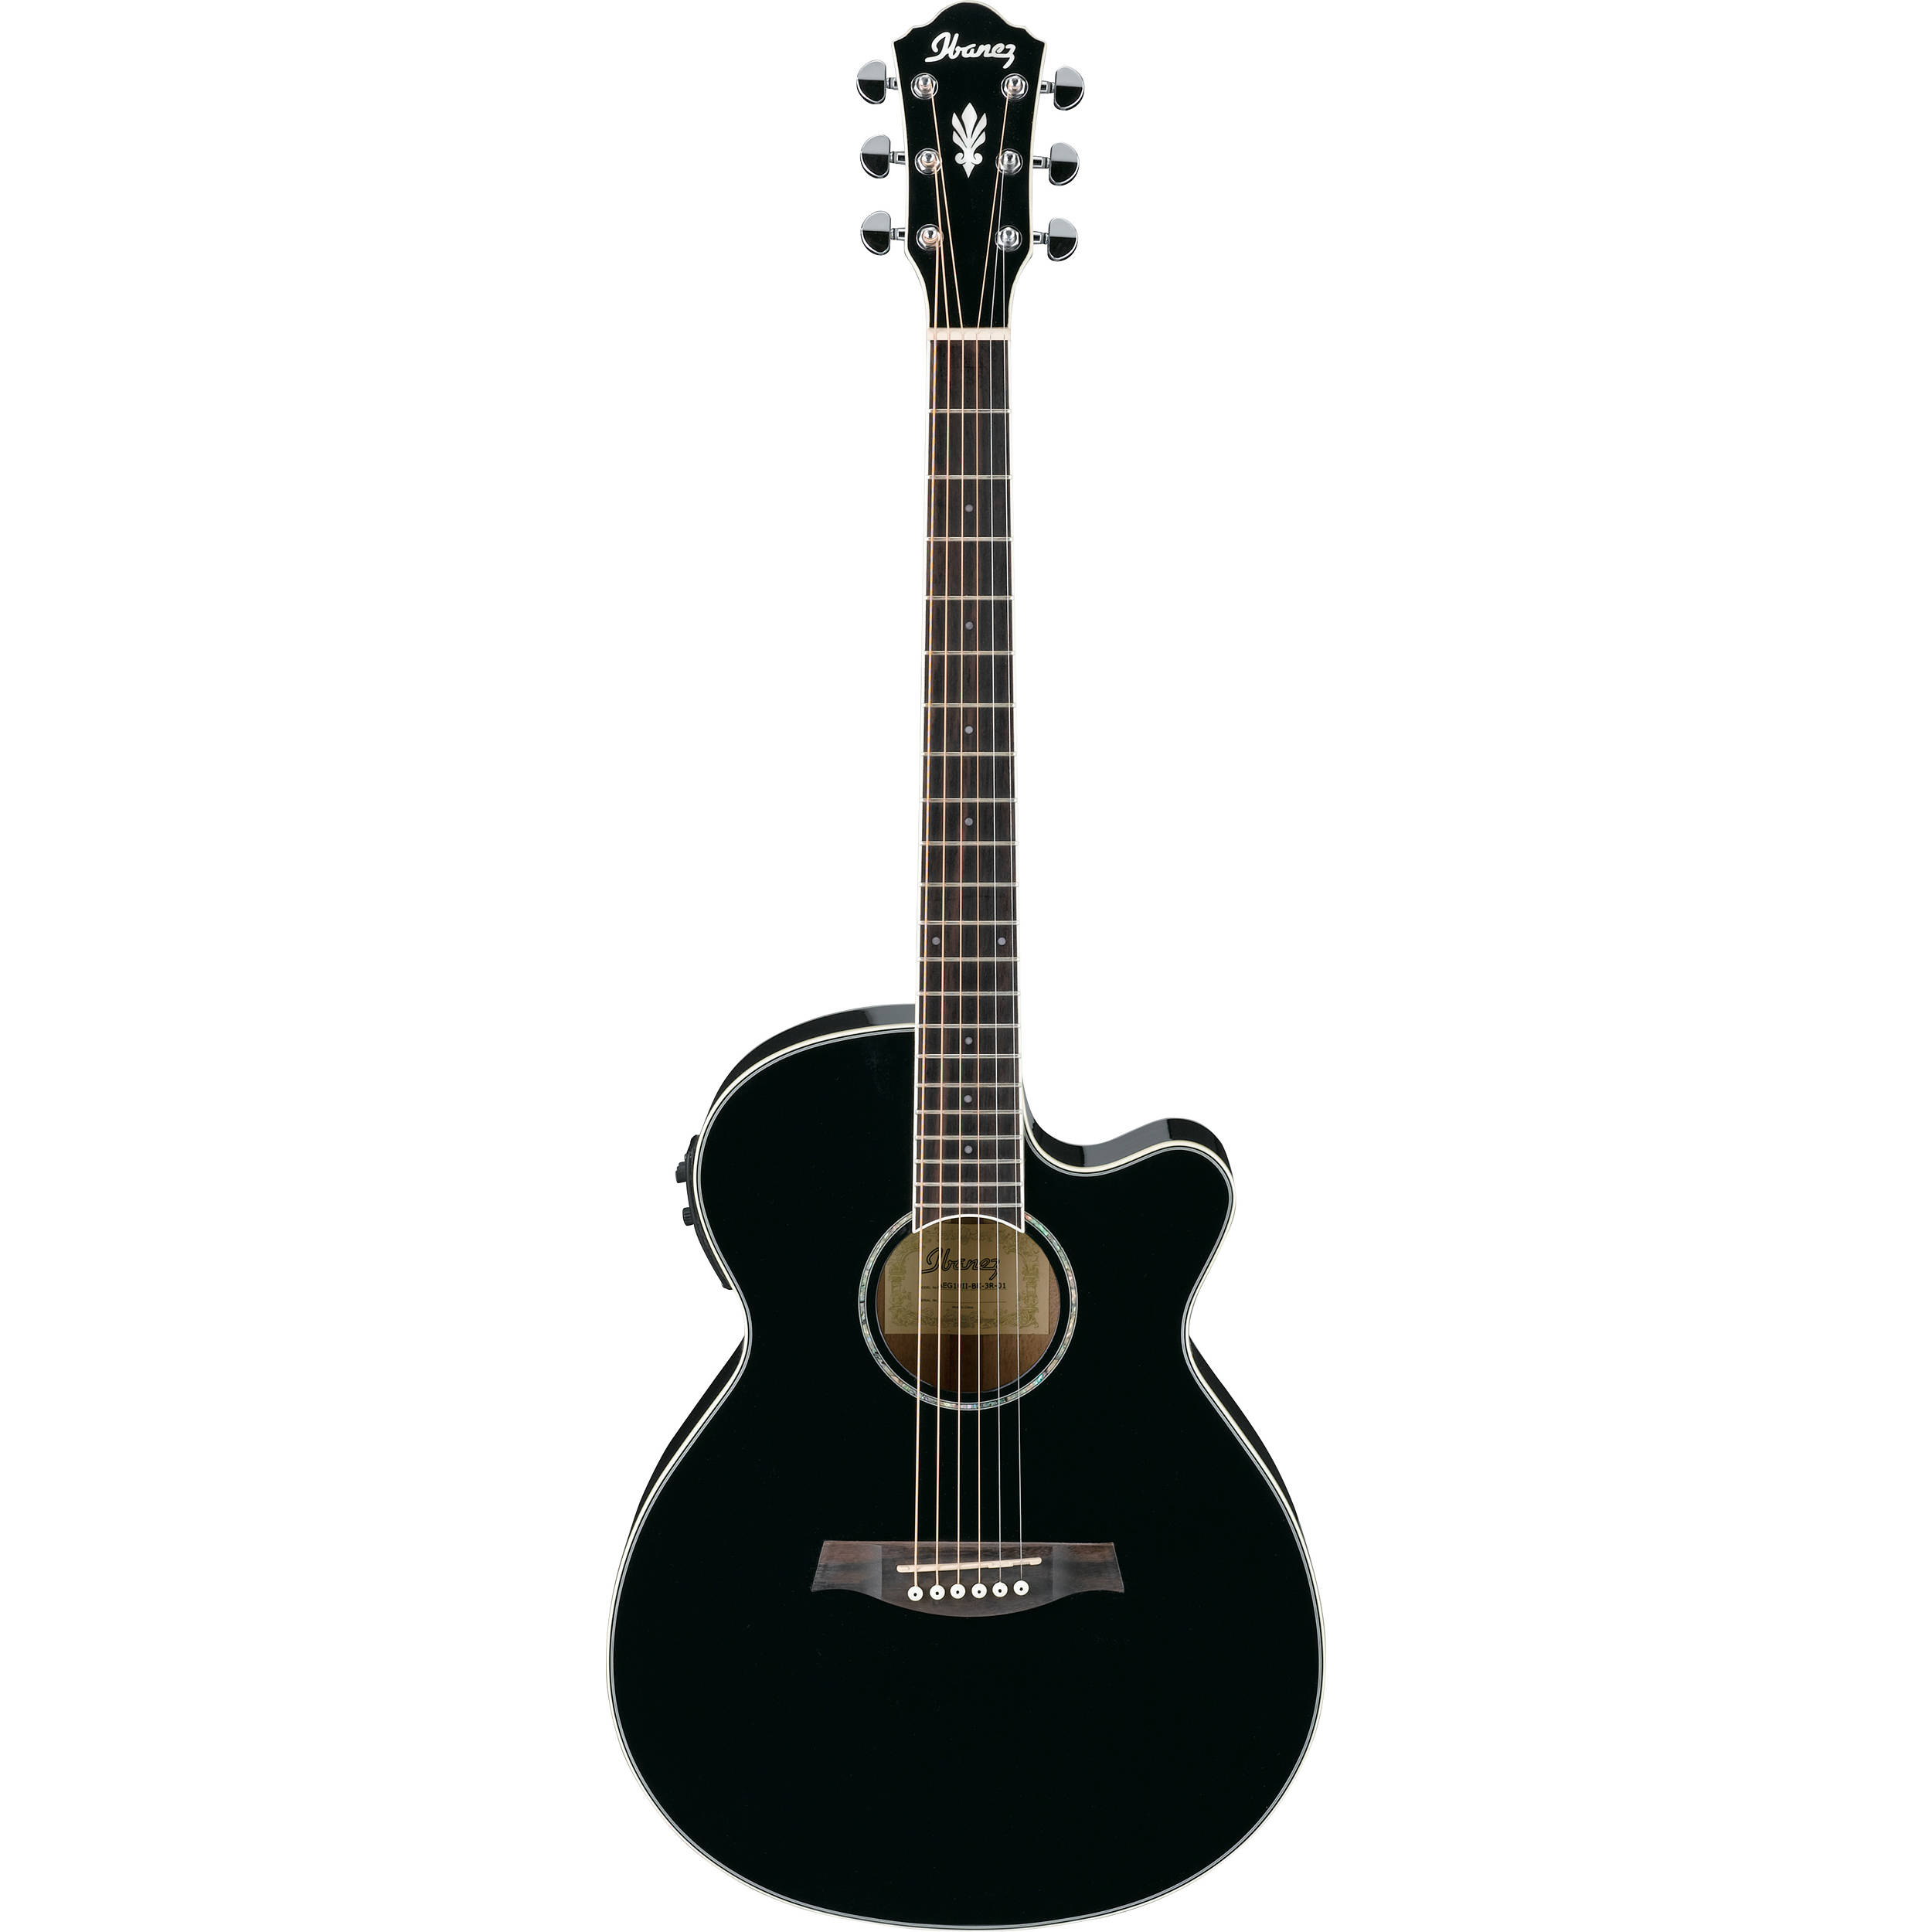 ibanez aeg10ii acoustic electric guitar black aeg10iibk b h. Black Bedroom Furniture Sets. Home Design Ideas